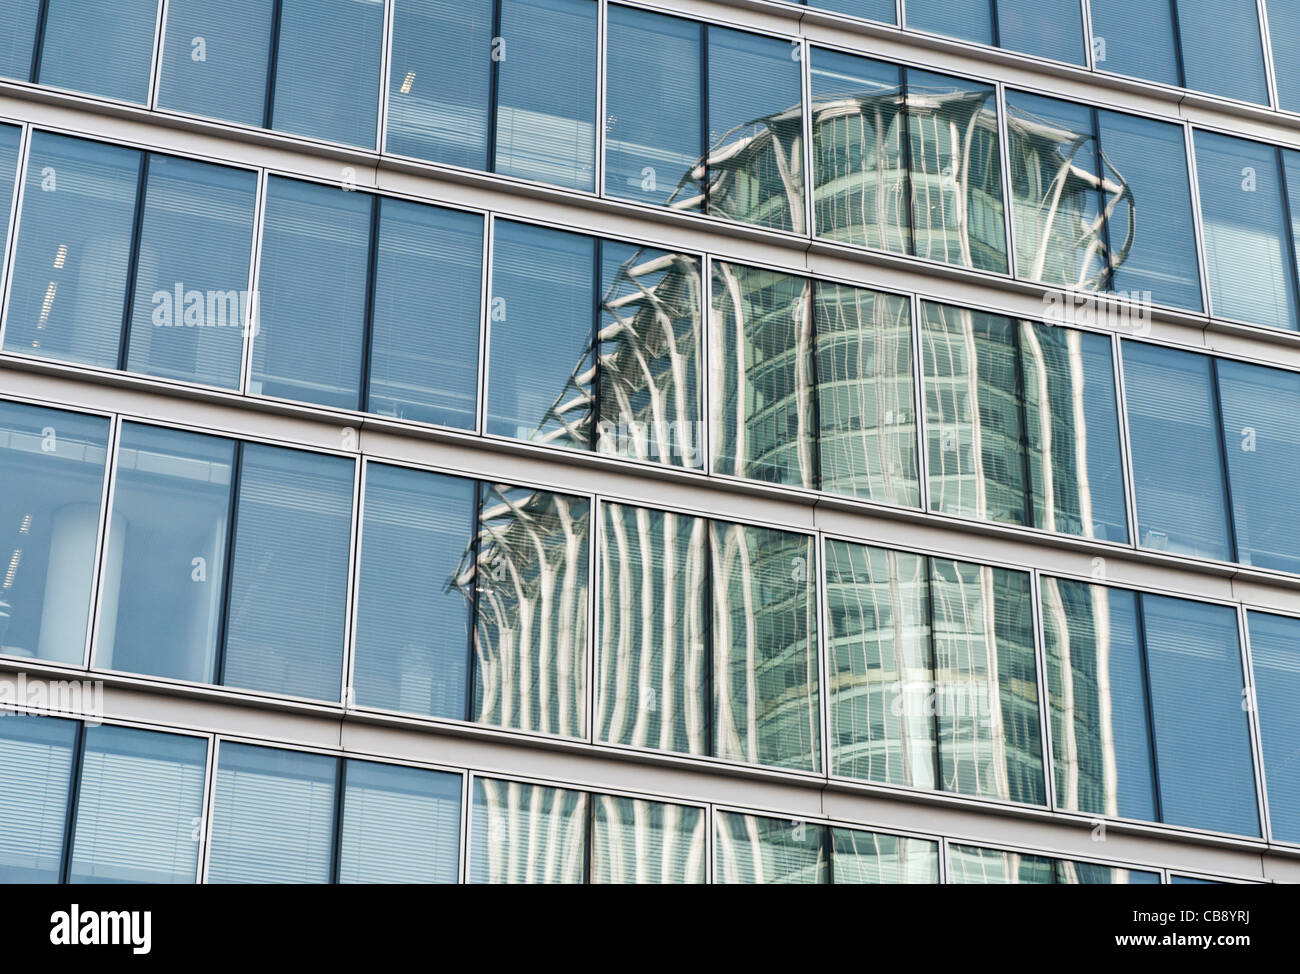 CityPoint - formally named Britannic Tower - reflected in the windows of an adjacent building. - Stock Image